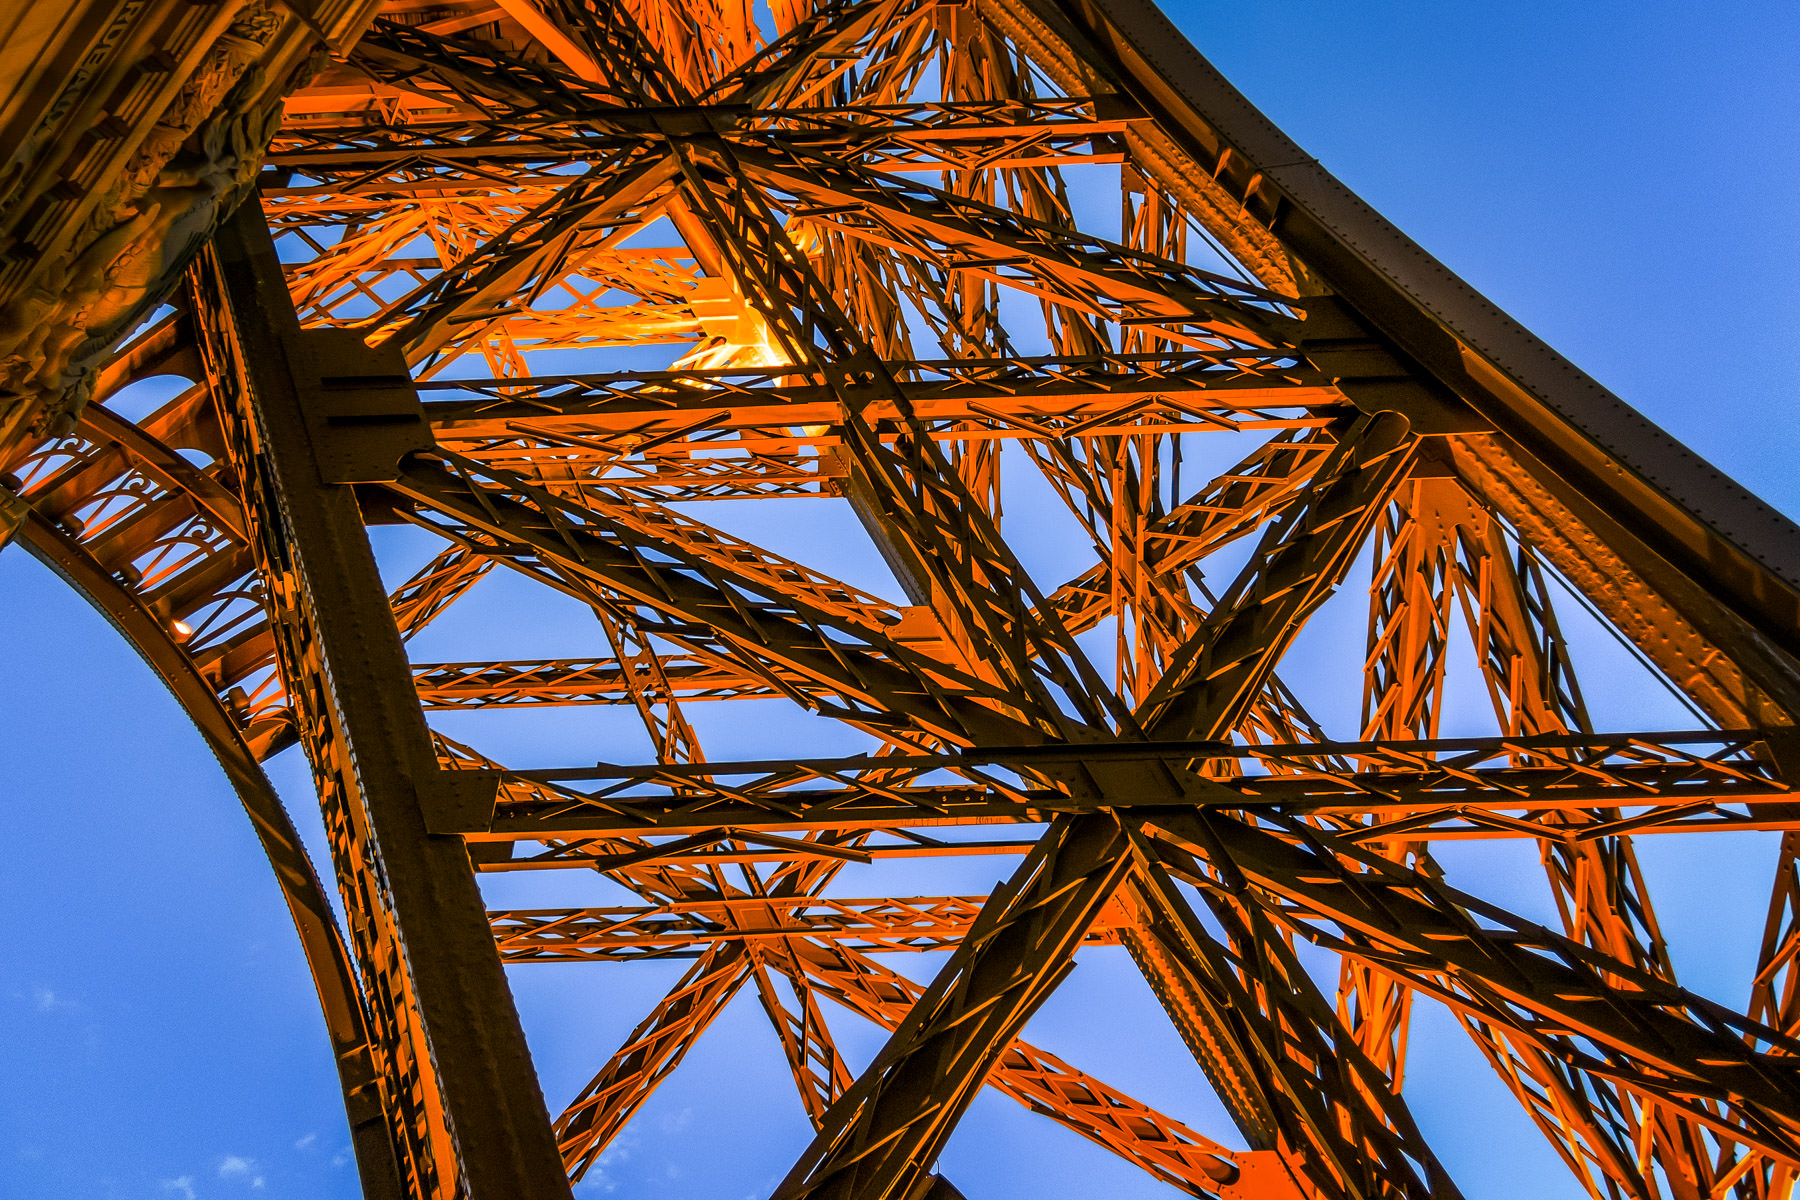 The iron stucture of one of the legs of the Paris Casino Hotel's reproduction of the Eiffel Tower catches the light of the late evening Las Vegas sun.